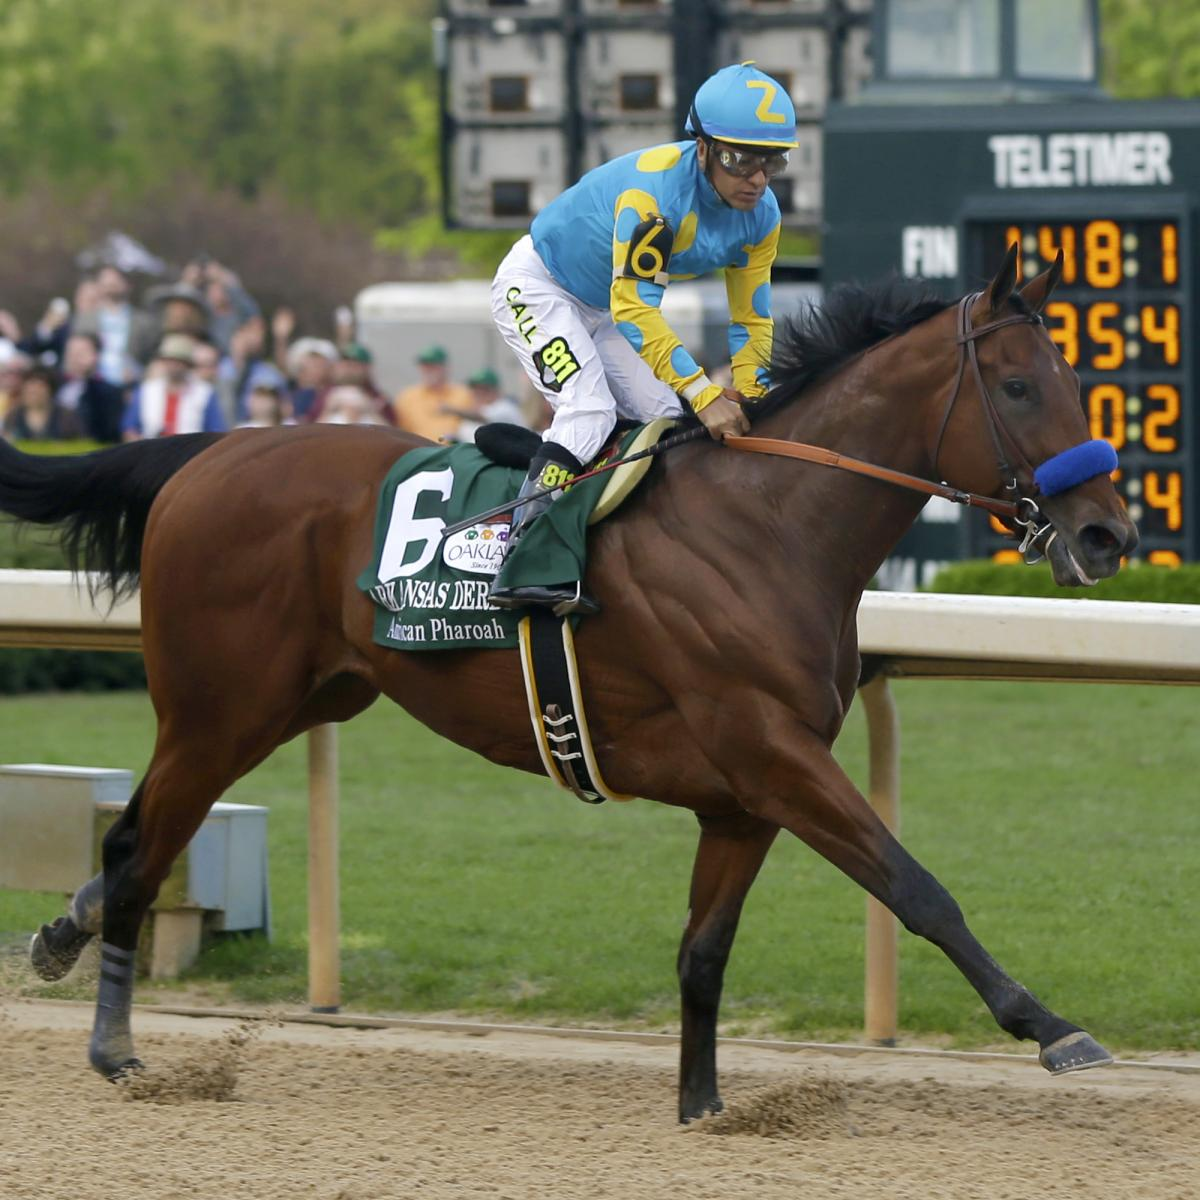 kentucky derby 2015 complete odds and analysis for top contenders bleacher report latest